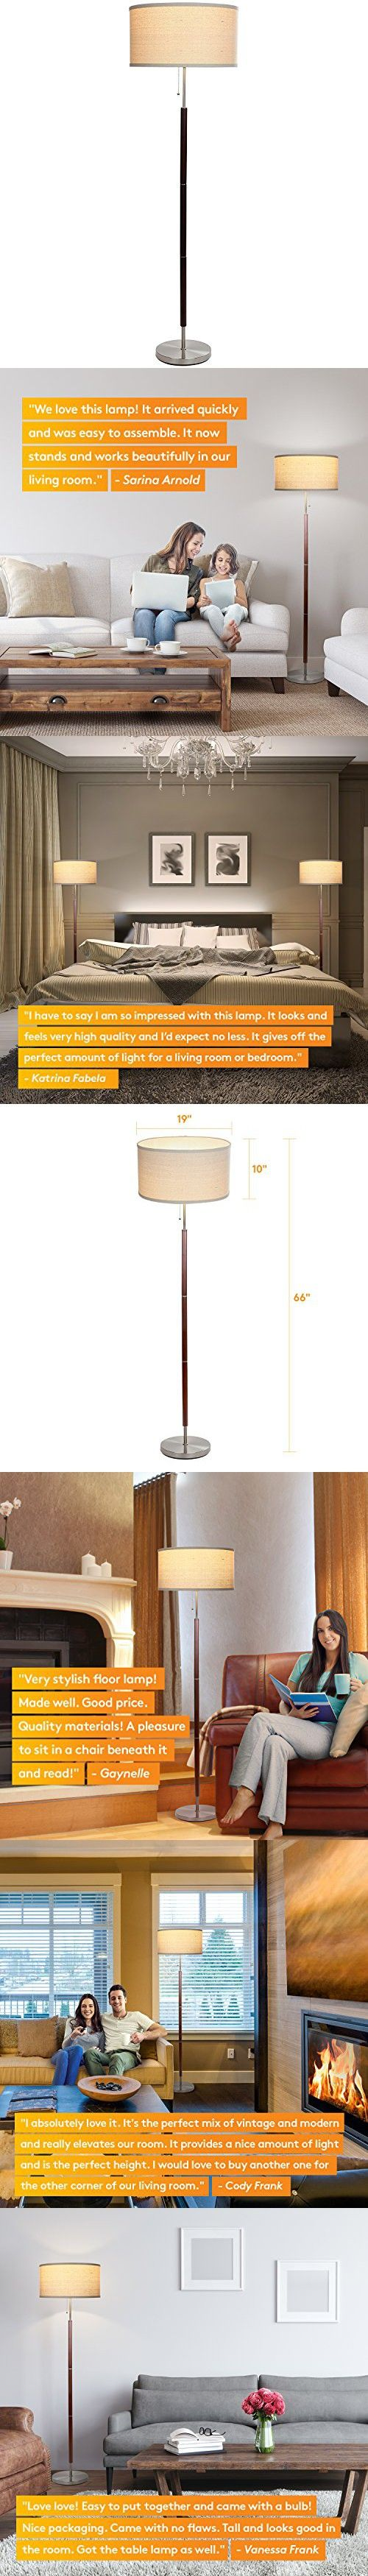 Brightech Carter Led Mid Century Floor Lamp Modern Living Room Standing Pole Light Tall Drum Shade Uplight And Downlight With Walnut Wood Finish Modern Floor Lamps Mid Century Floor